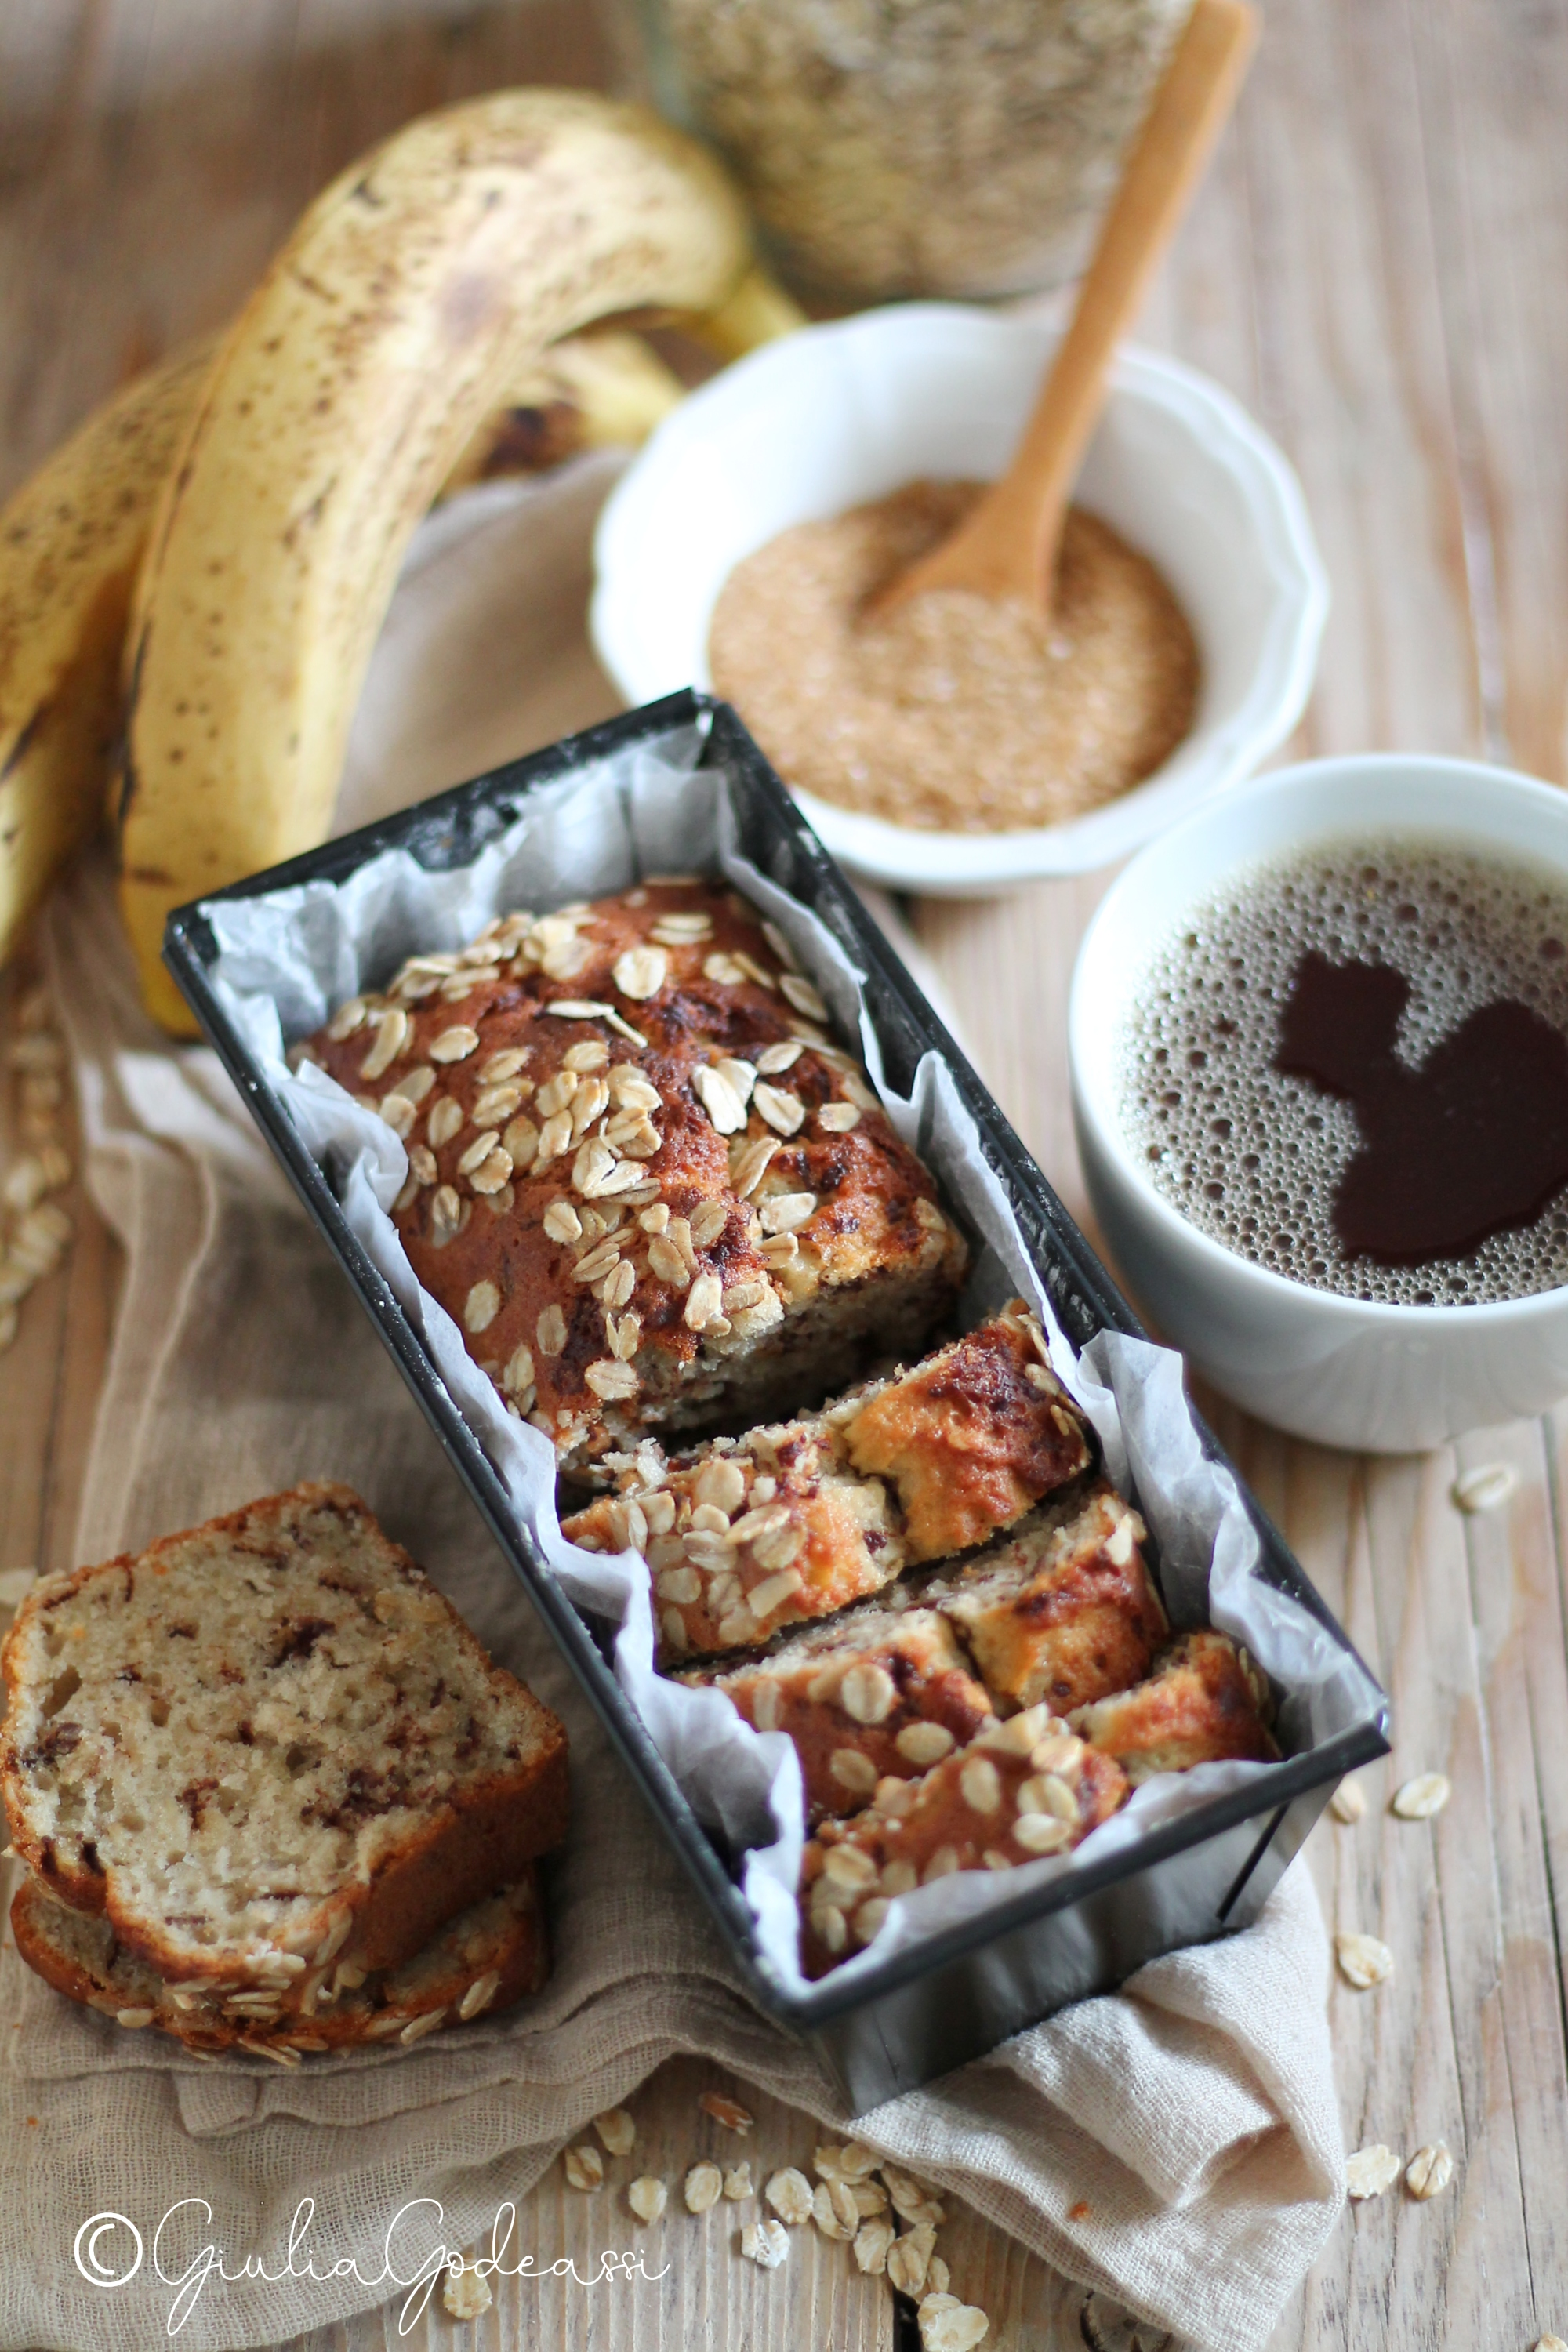 BANANA BREAD ALL'AVENA E CIOCCOLATO